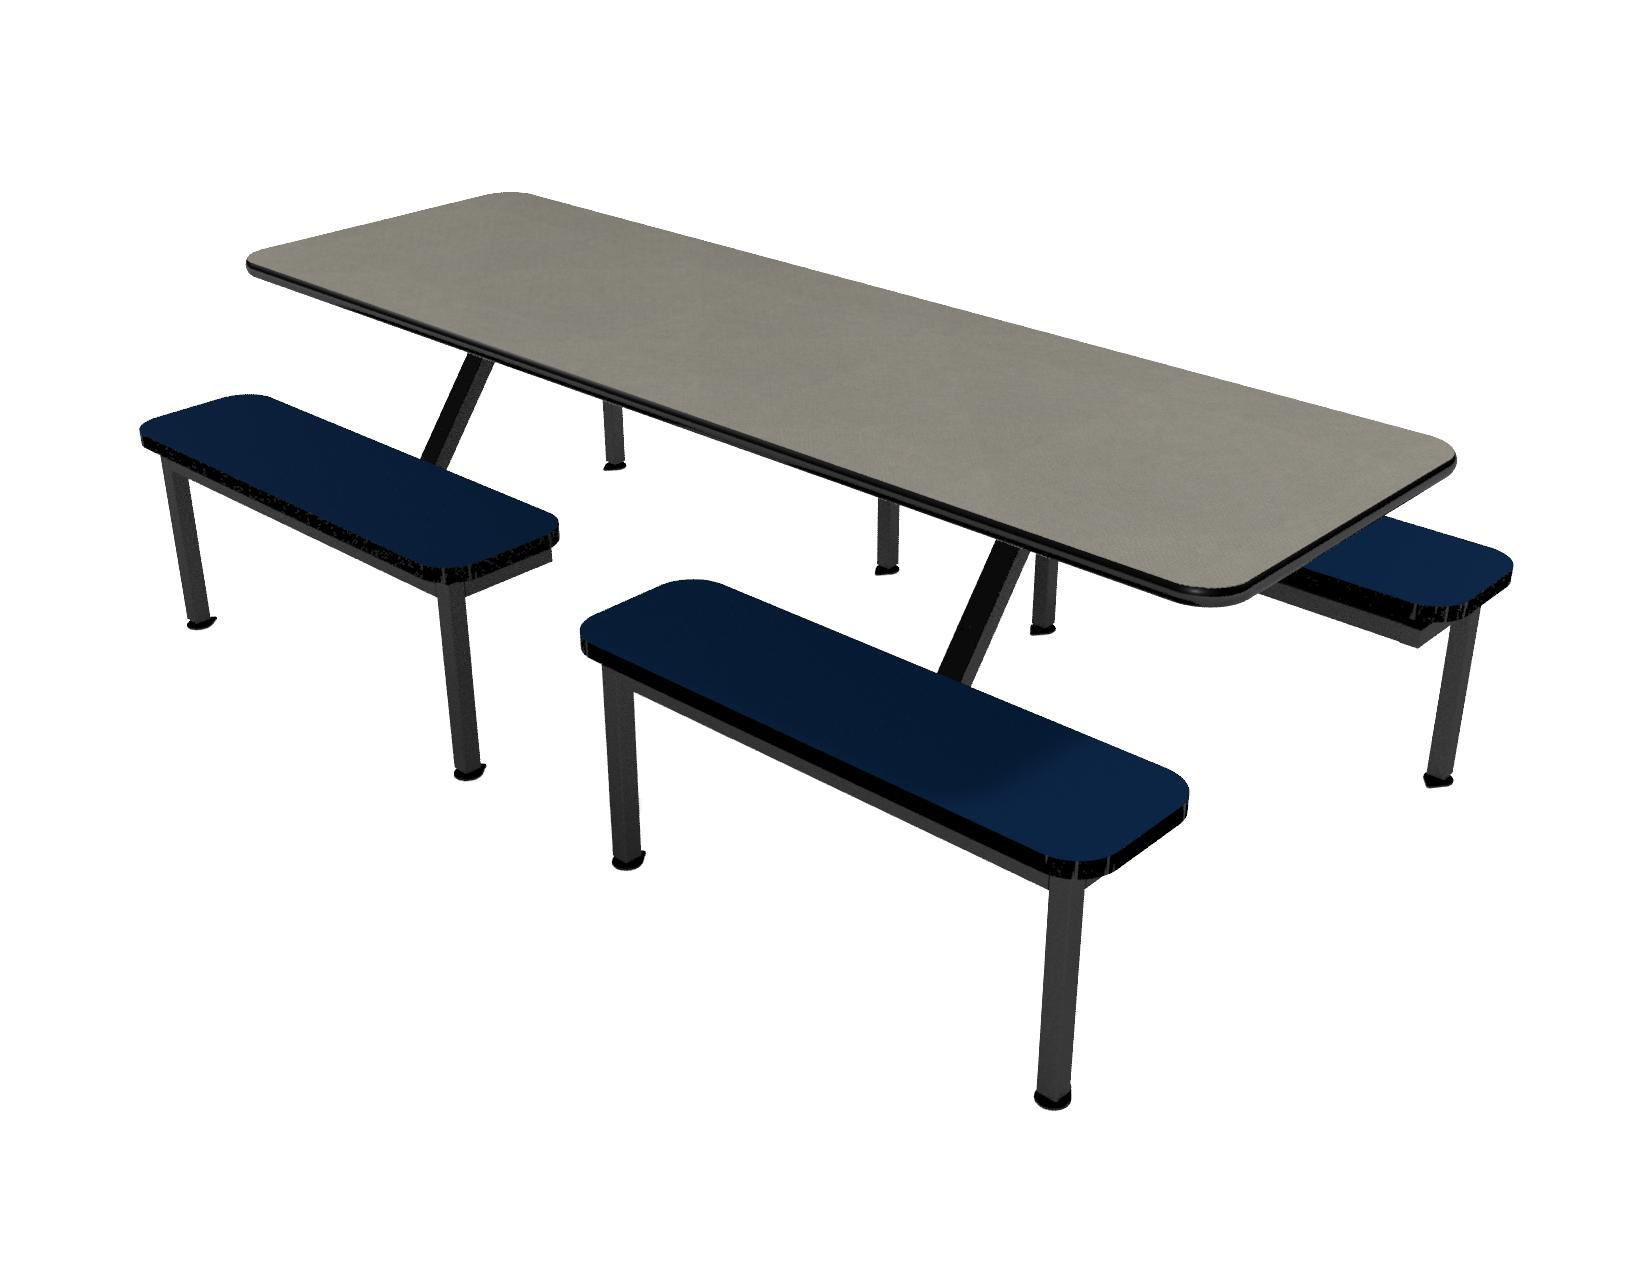 Fog laminate table and Atlantis laminate bench